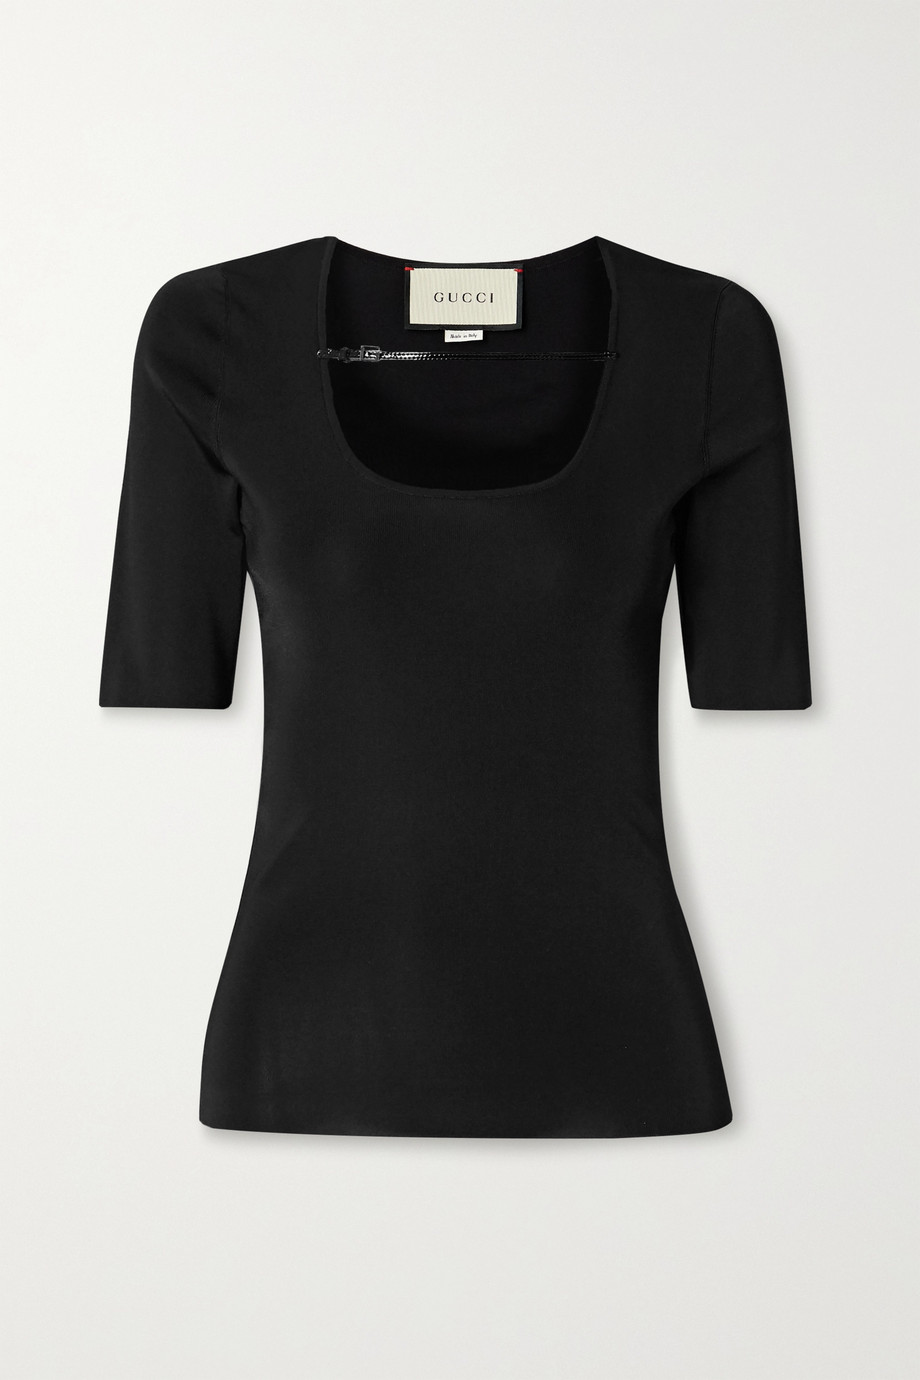 Gucci Patent-leather trimmed stretch-jersey top